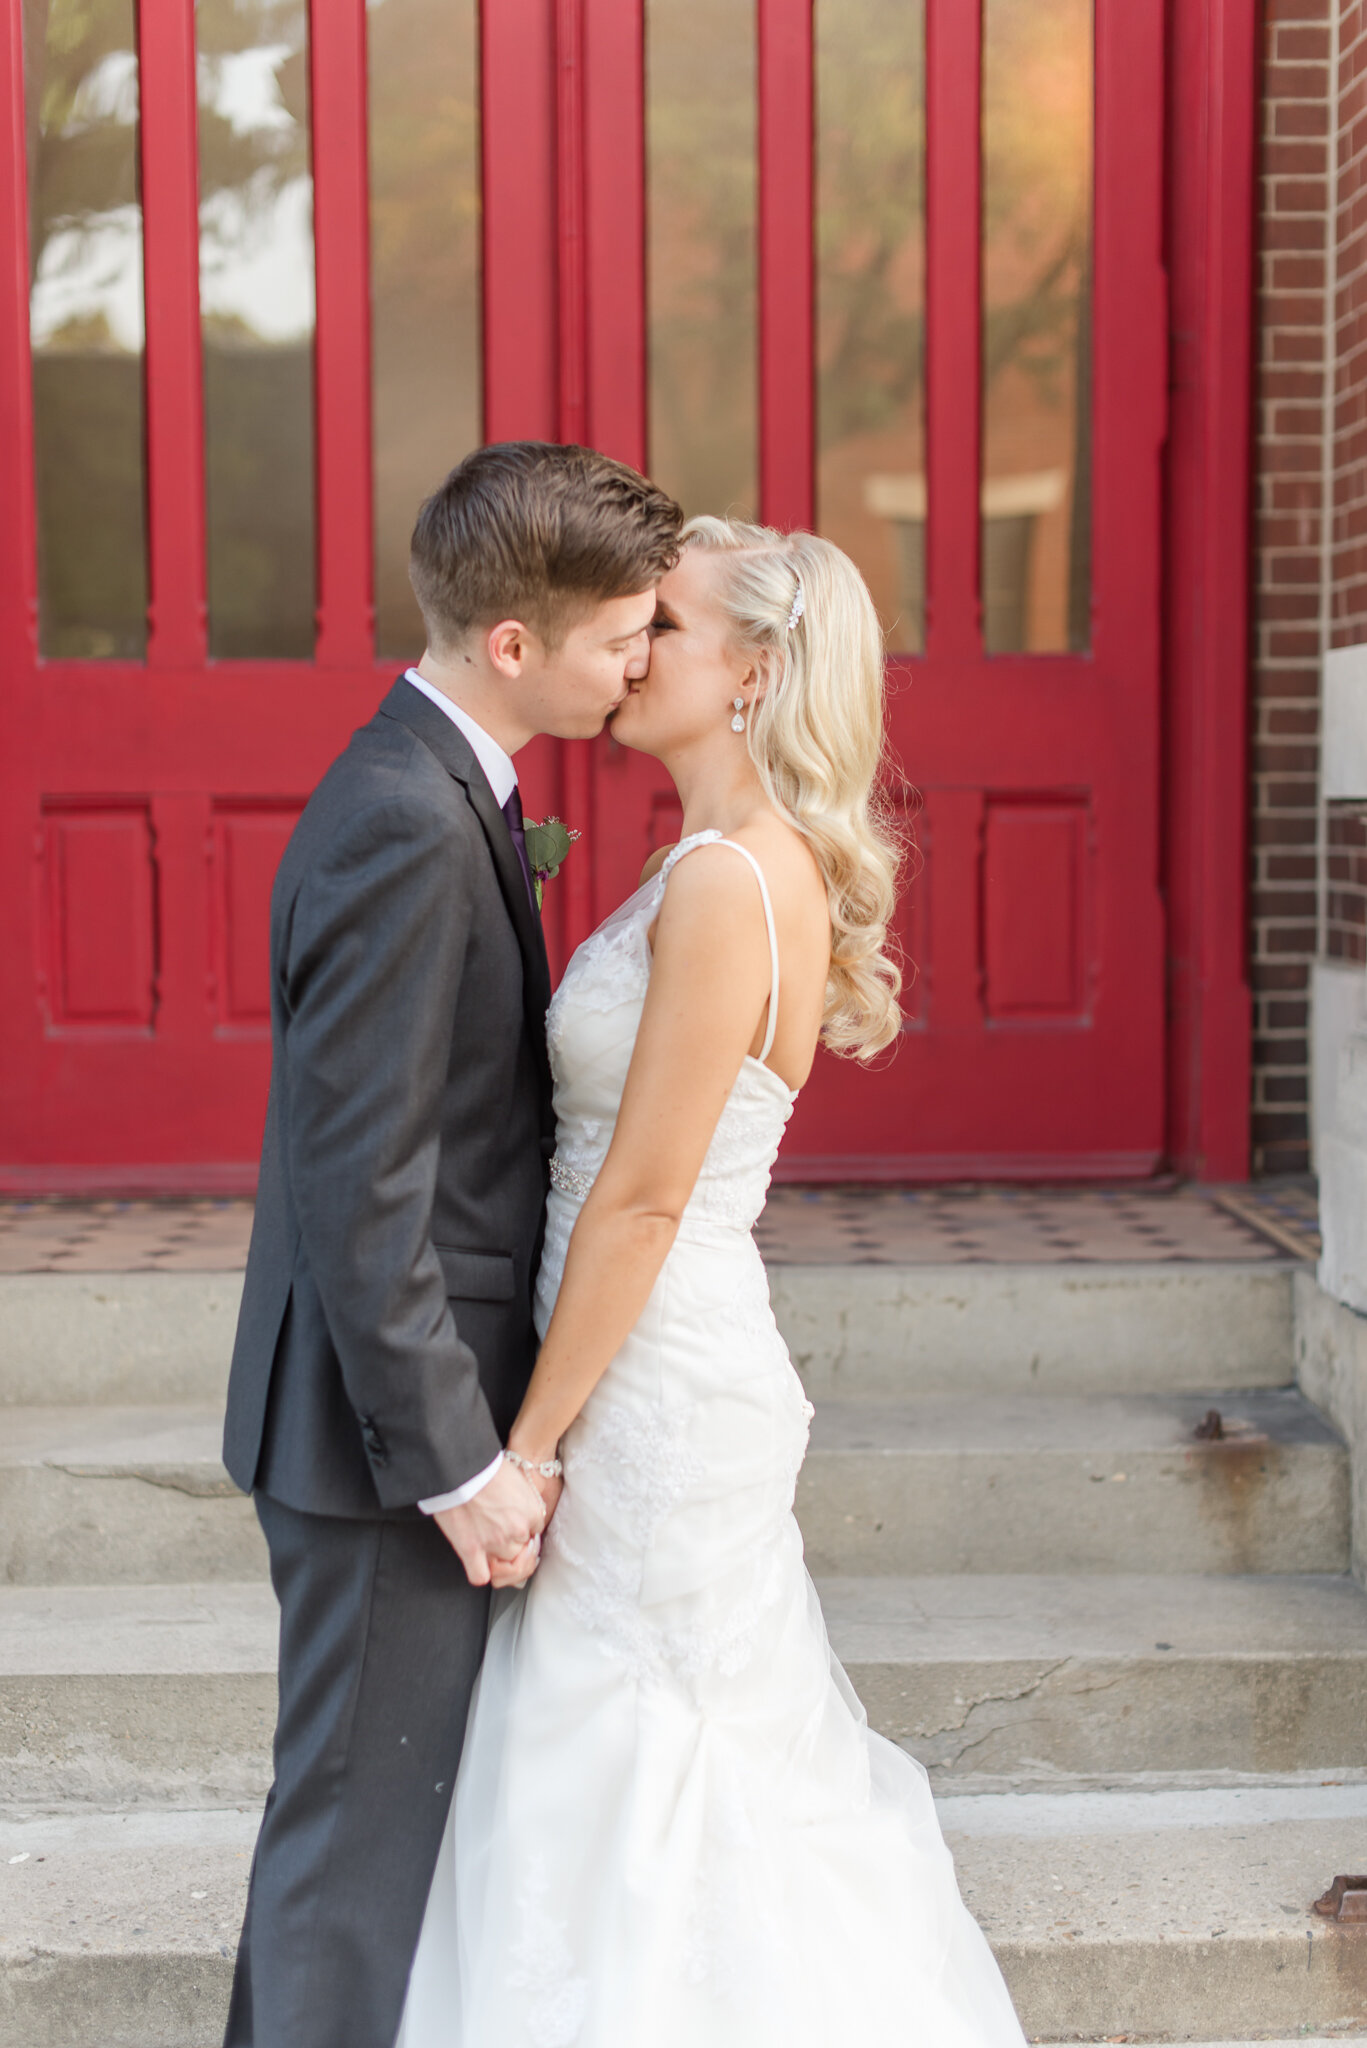 Downtown Indianapolis Wedding at Cyrus Place8330.jpg